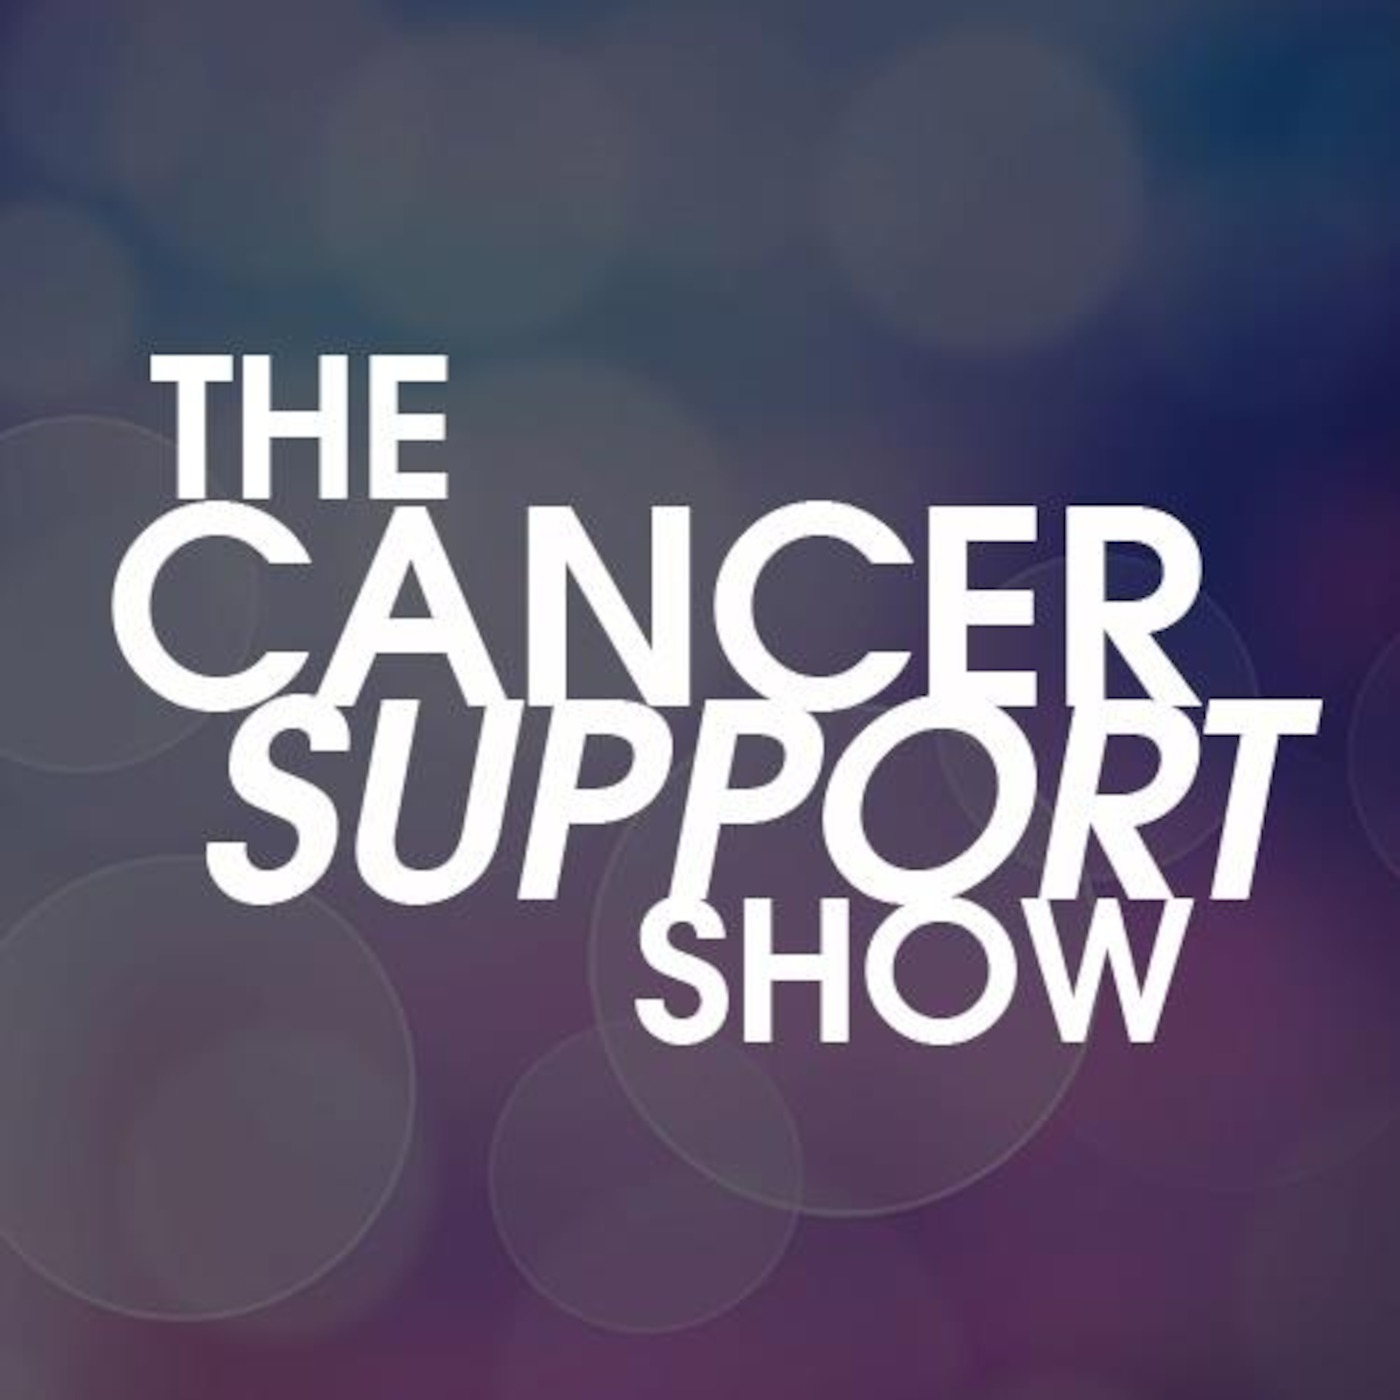 The Cancer Support Show